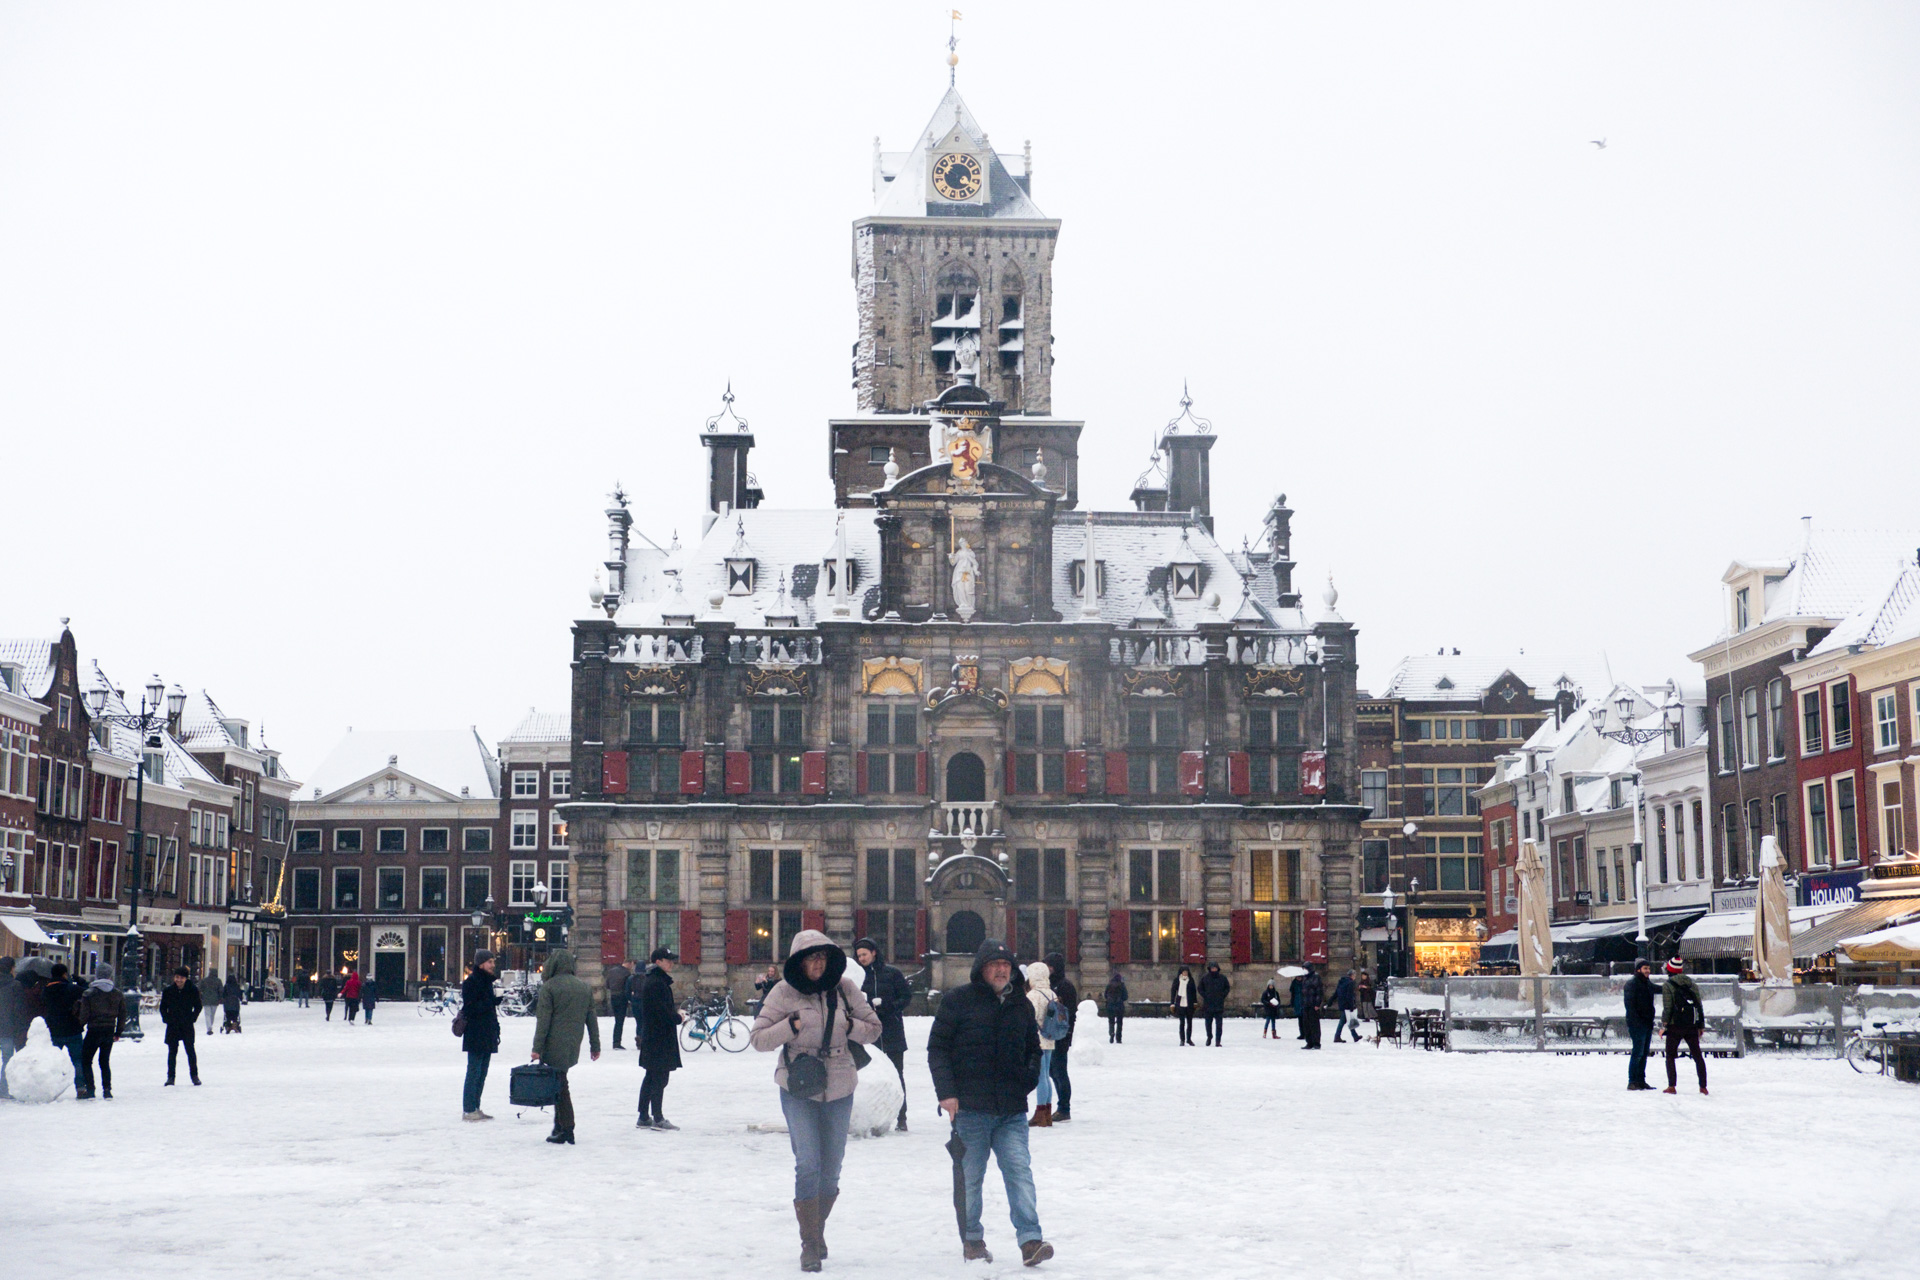 Heavy snowfall in front of Delft Stadhuis